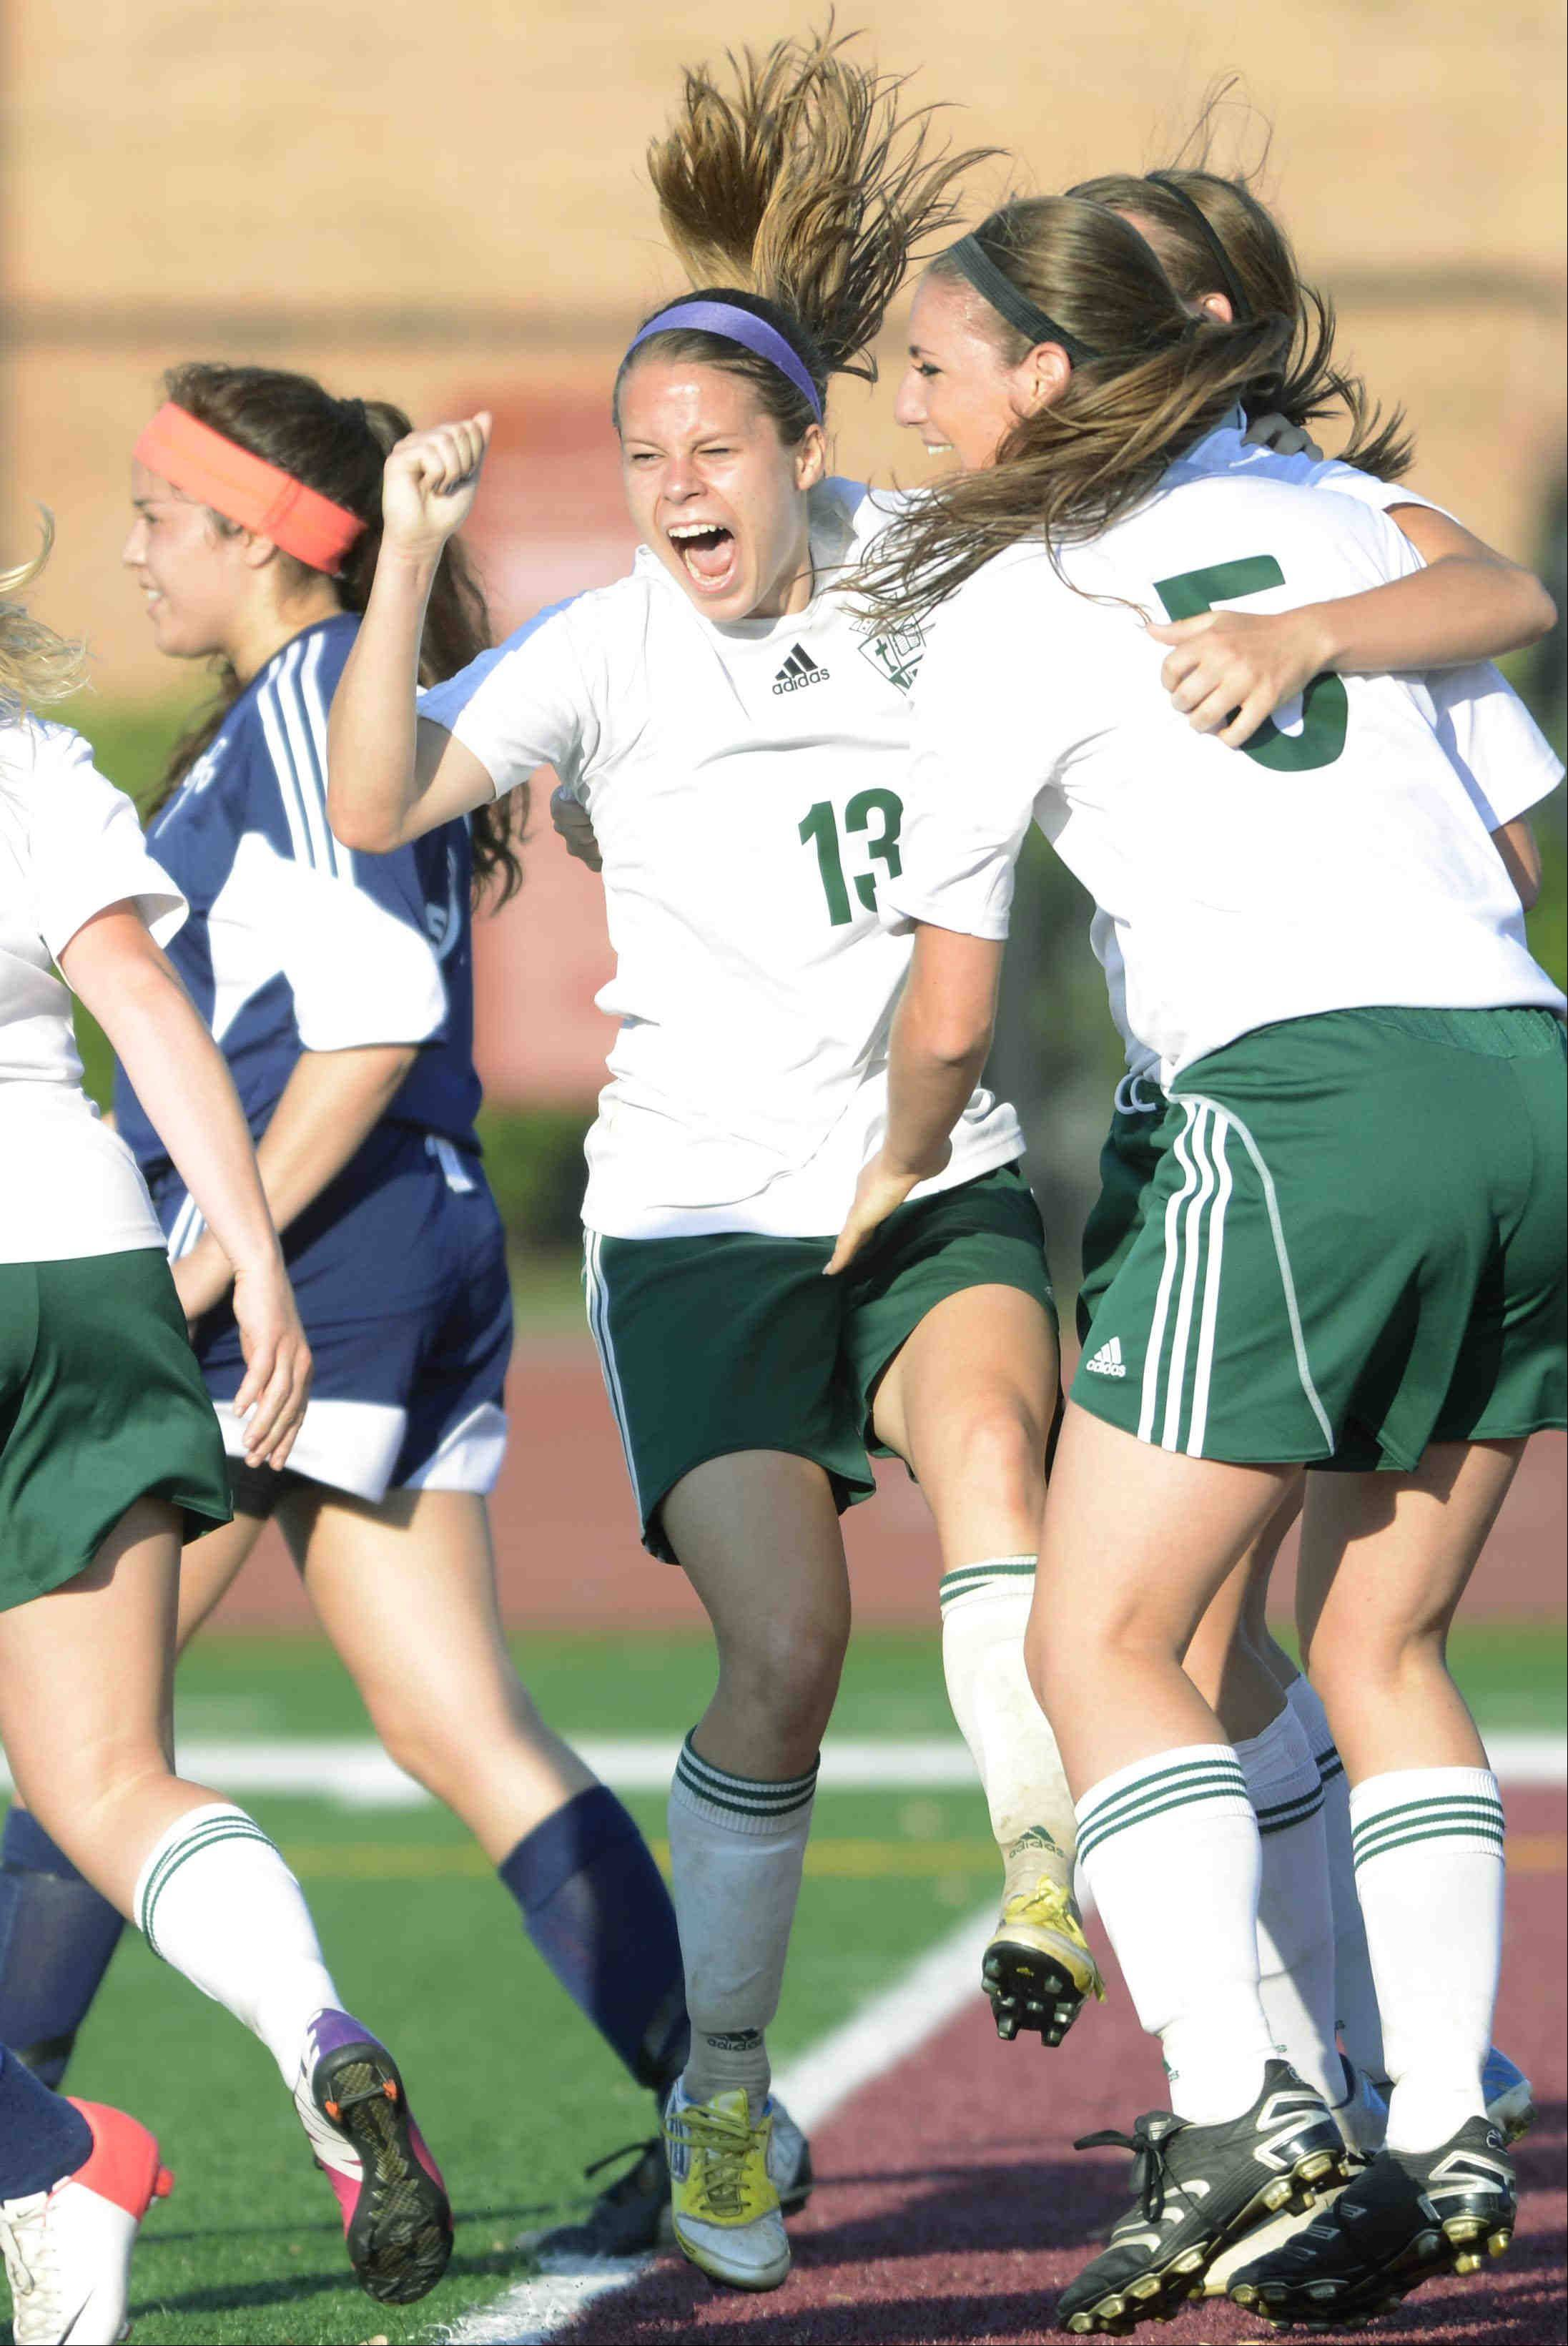 St. Edward's Meagan Kearney celebrates her goal against Francis W. Parker Tuesday in the supersectional playoff at Concordia University in River Forest.